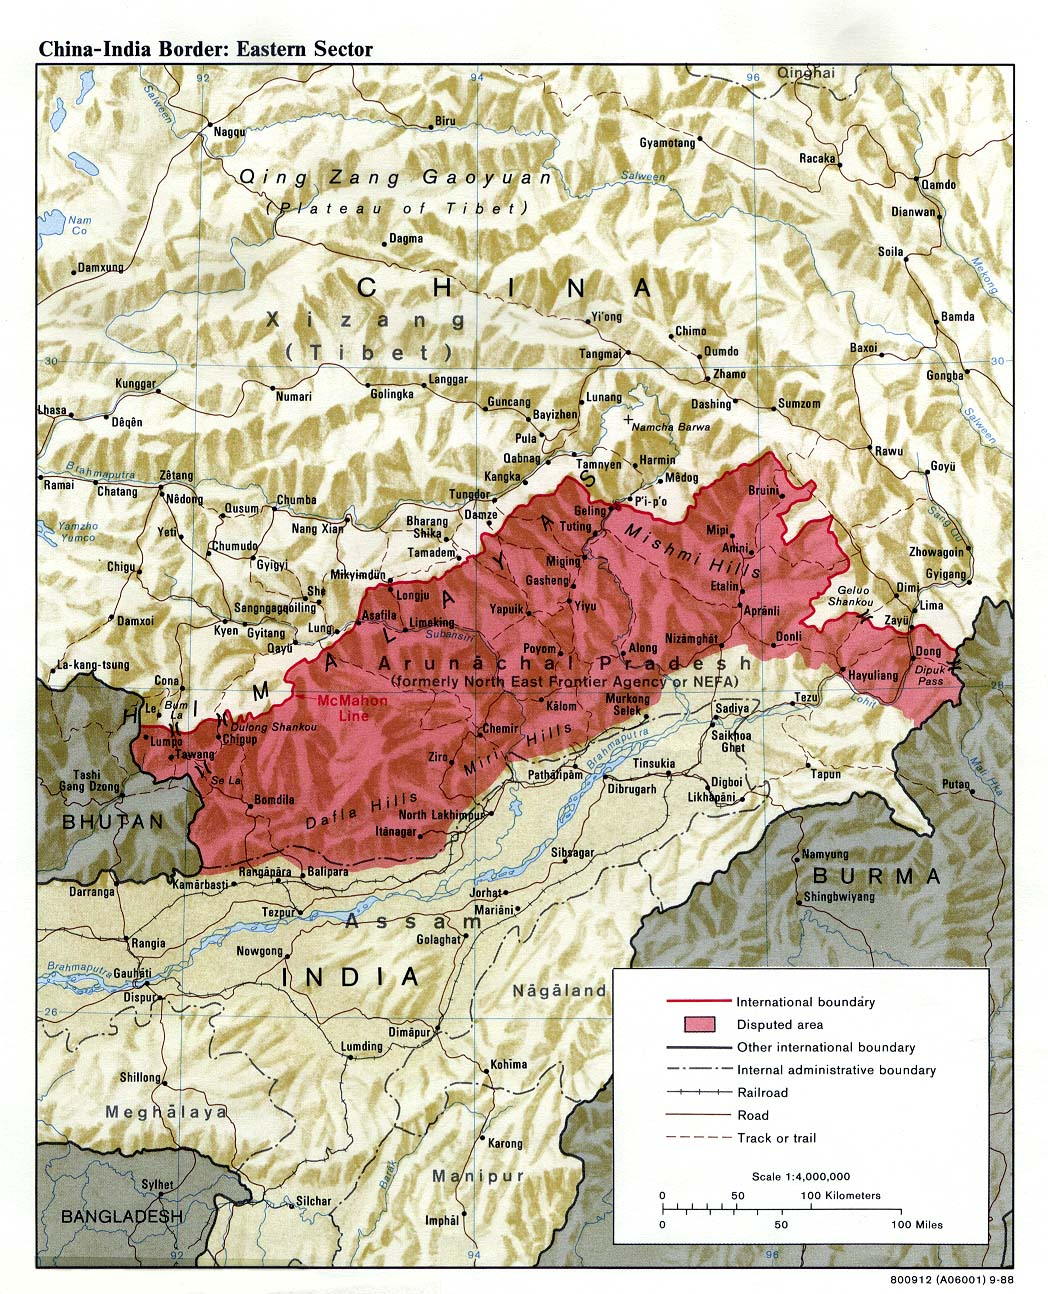 Download free india maps china india border eastern sector gumiabroncs Images